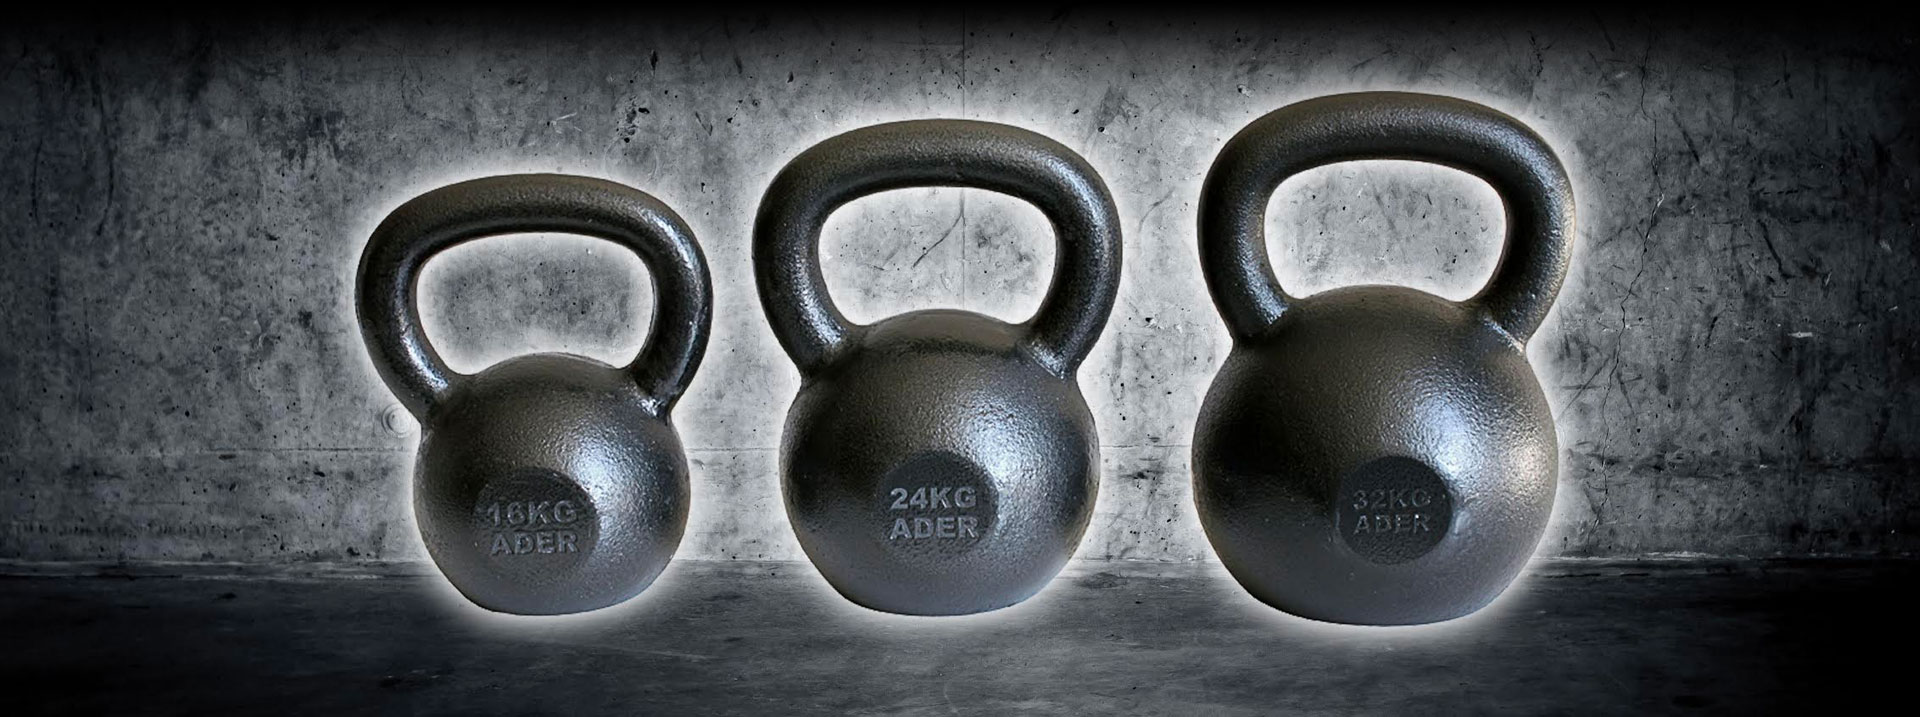 which kettlebell is right for me